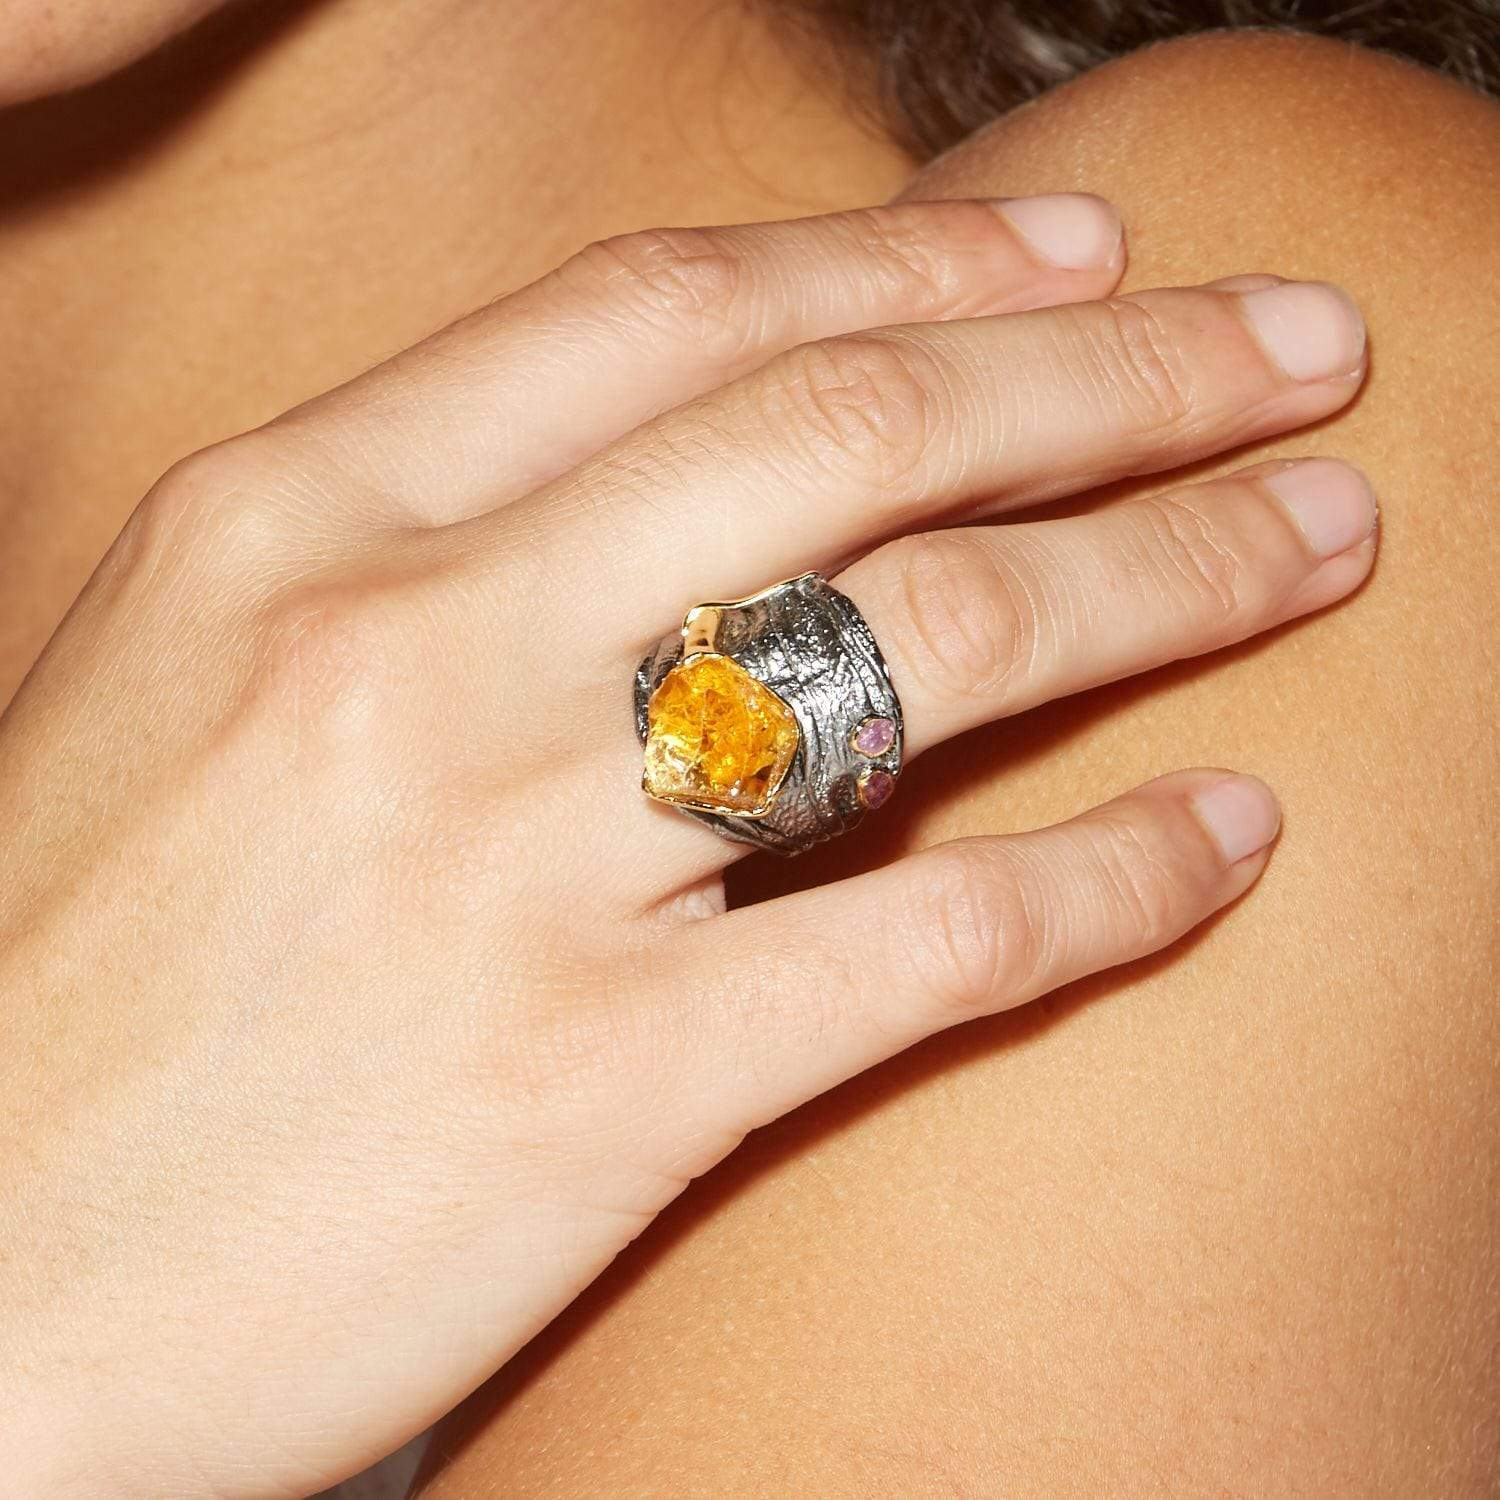 Angen Ring, Citrine, Gold, gray, Handmade, Rhodium, Ruby, spo-disabled, StoneColor:Orange, Style:Statement, Type:LargeSoloStone Ring